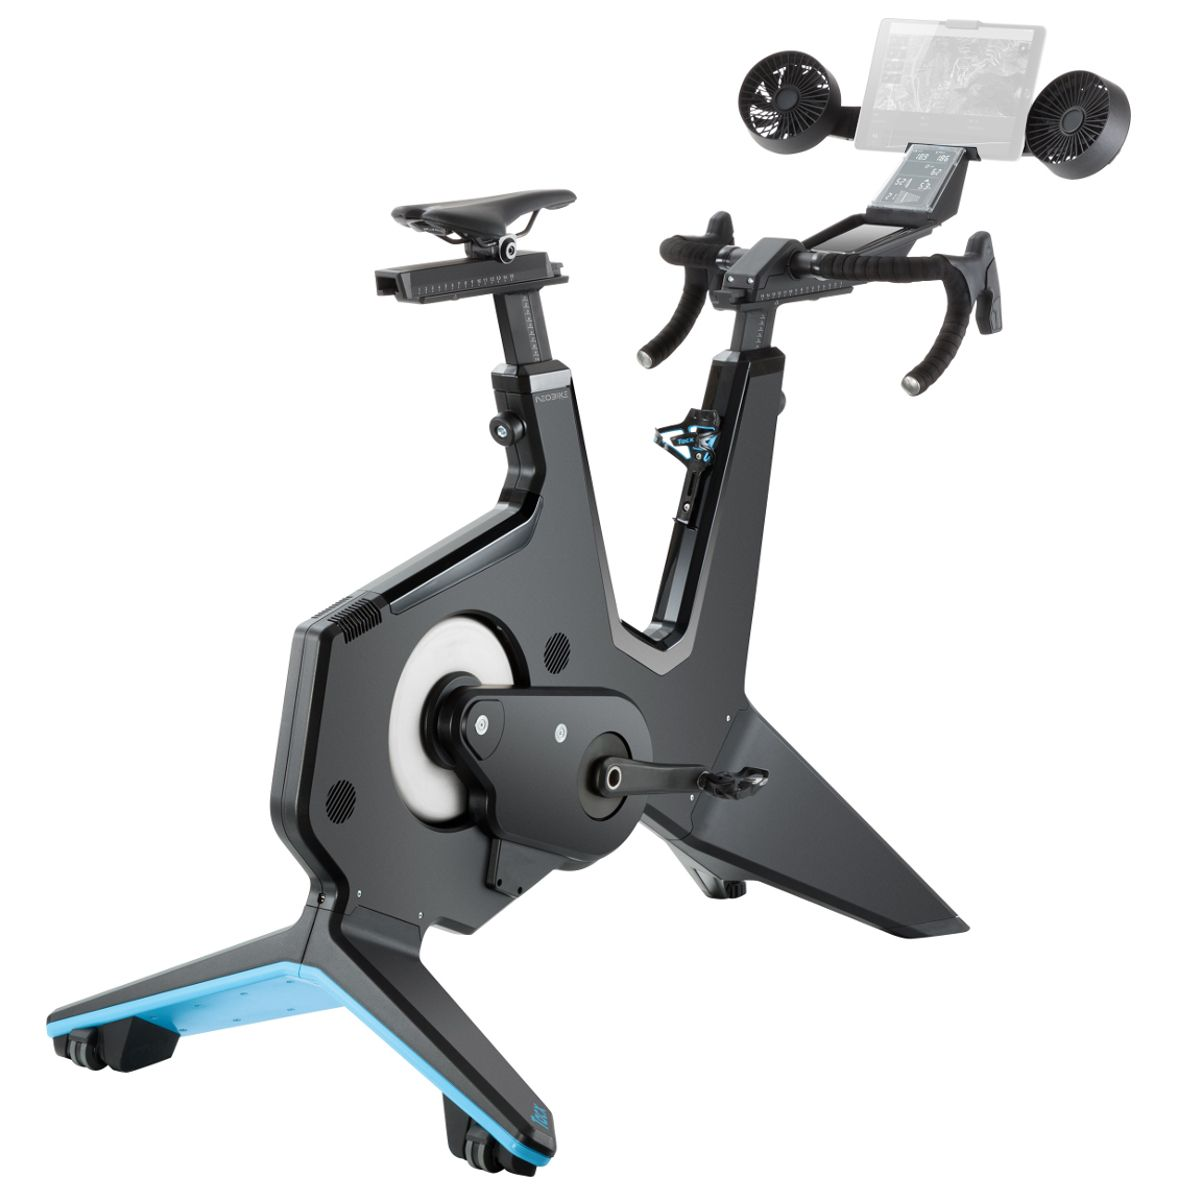 Tacx Tablet Holder for indoor Cycling Training